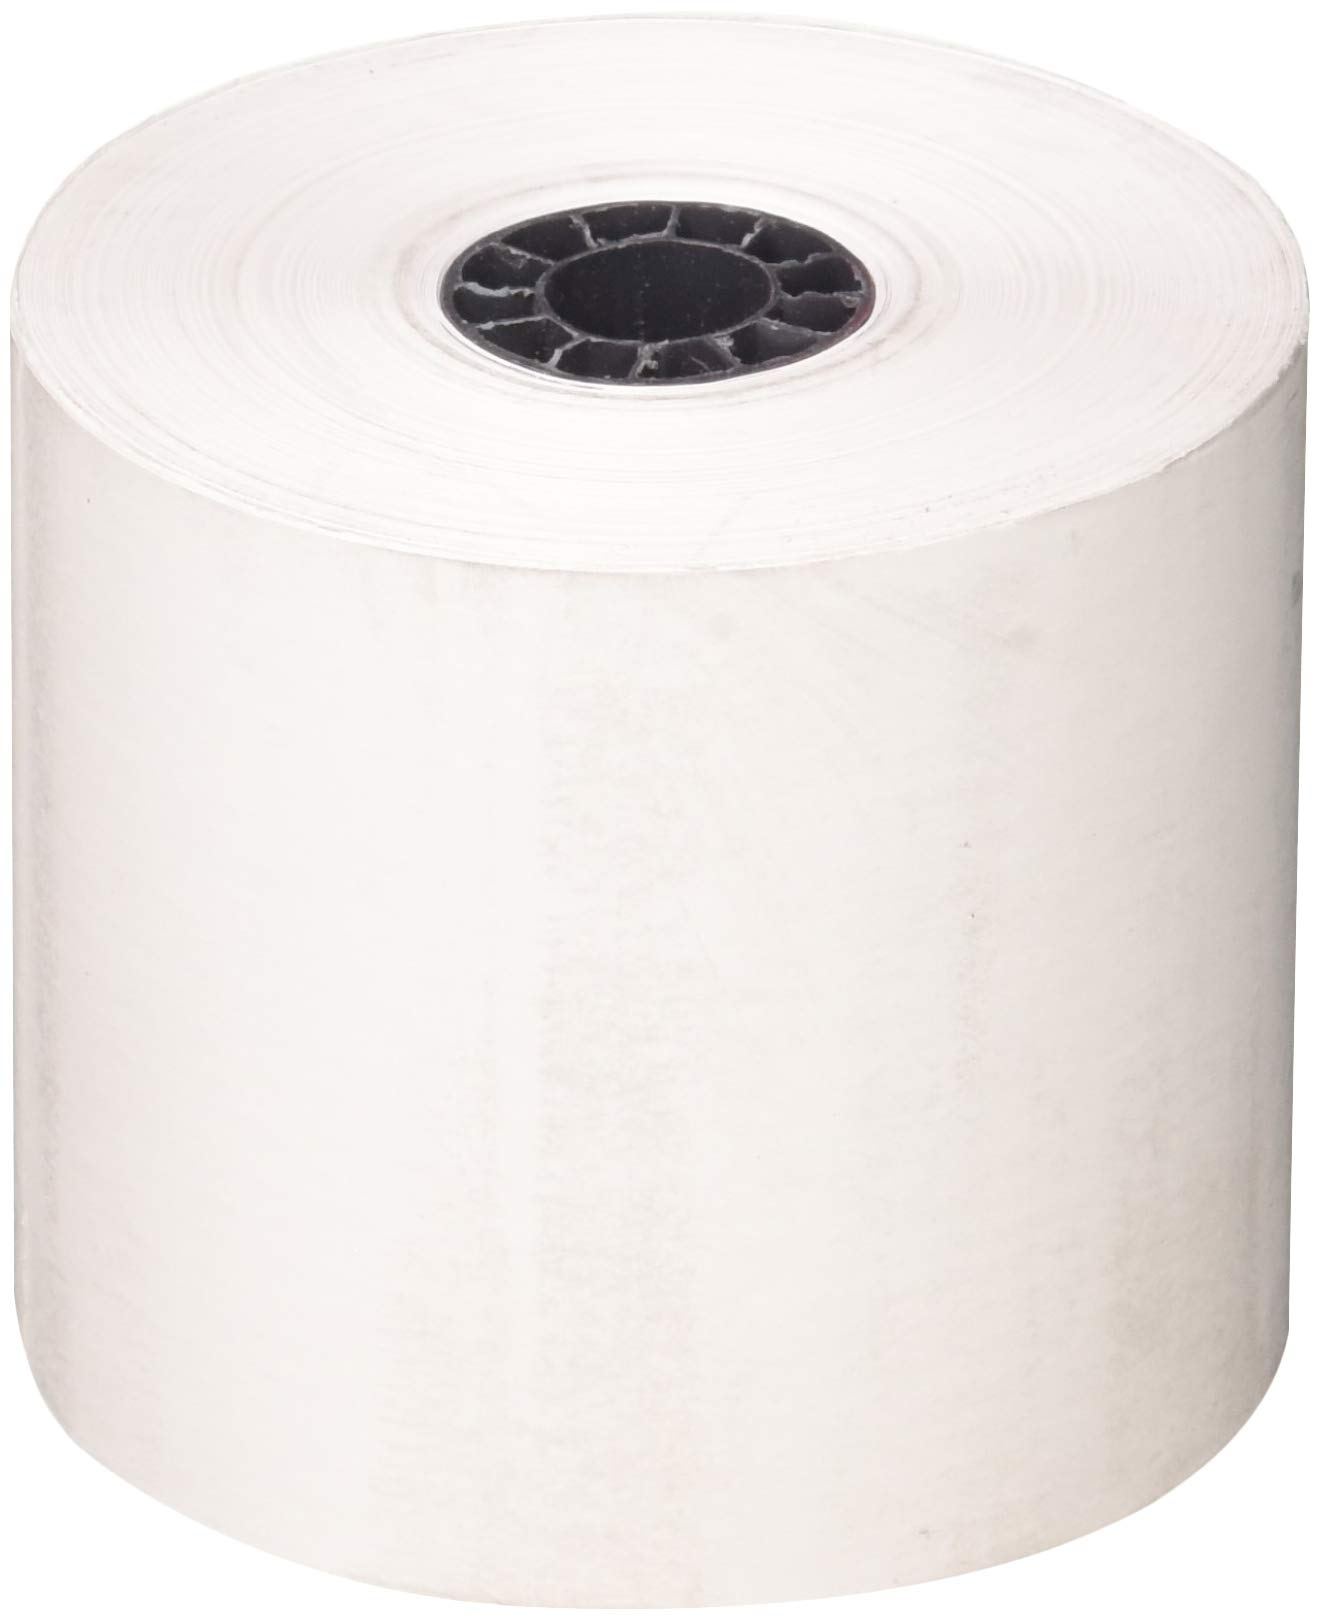 FHS Retail Thermal Receipt Paper, 2.25 Inches x 165 Feet Roll (32 Pack) by FHS Retail